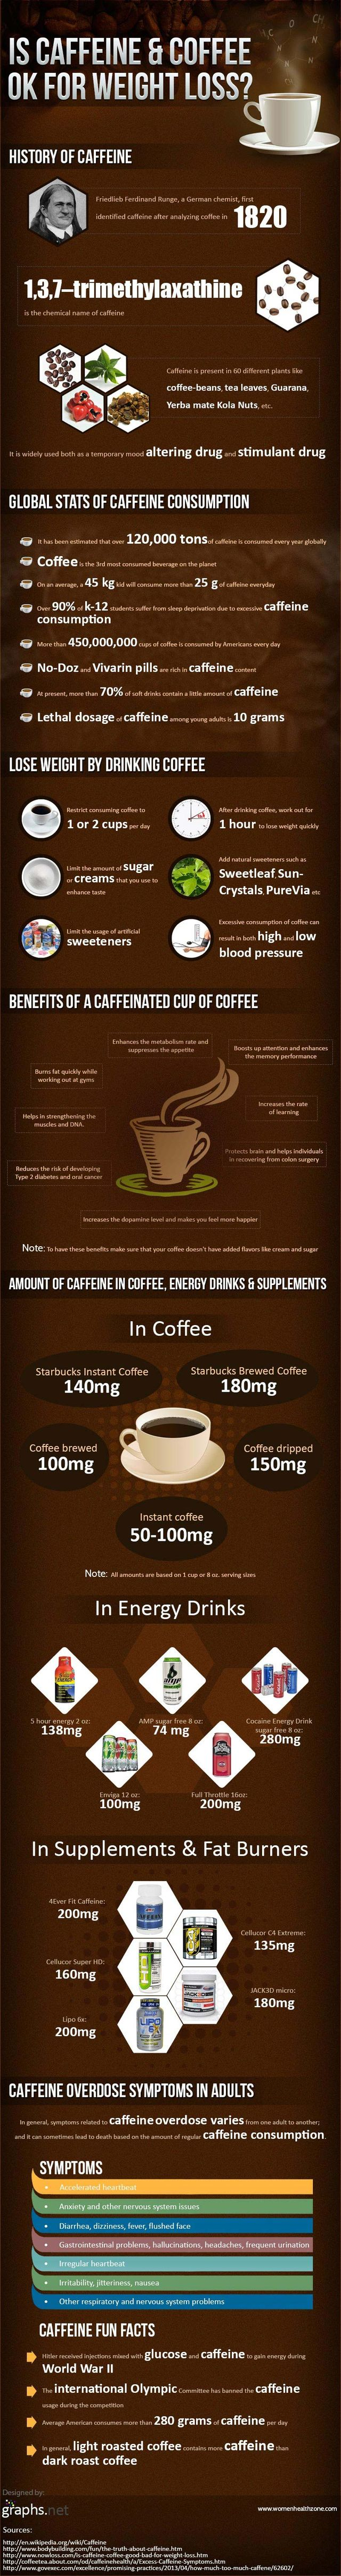 Coffee will make you smarter, better, faster and stronger